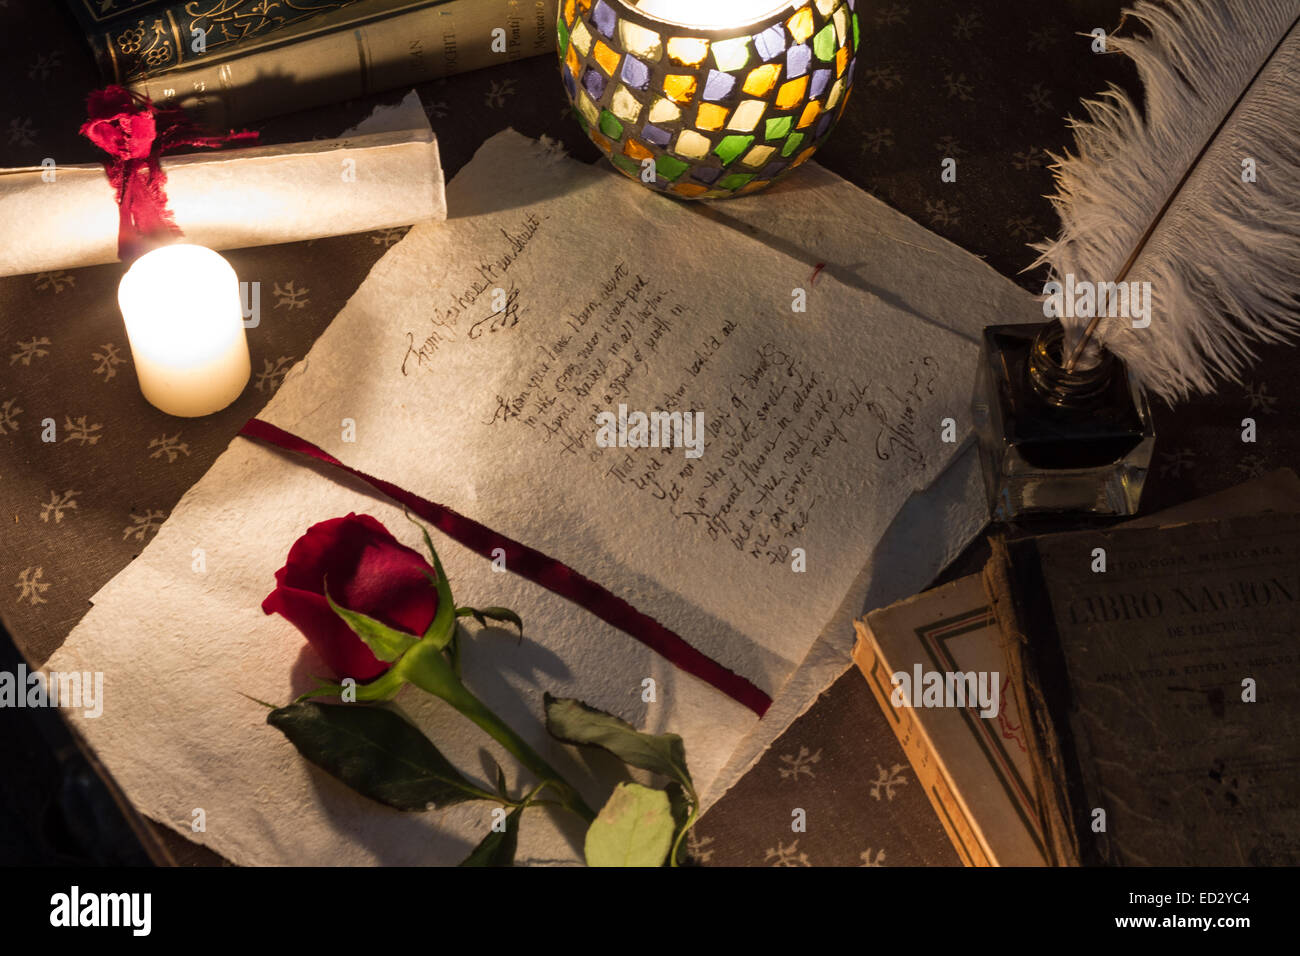 Old fashion quill love letter - Stock Image